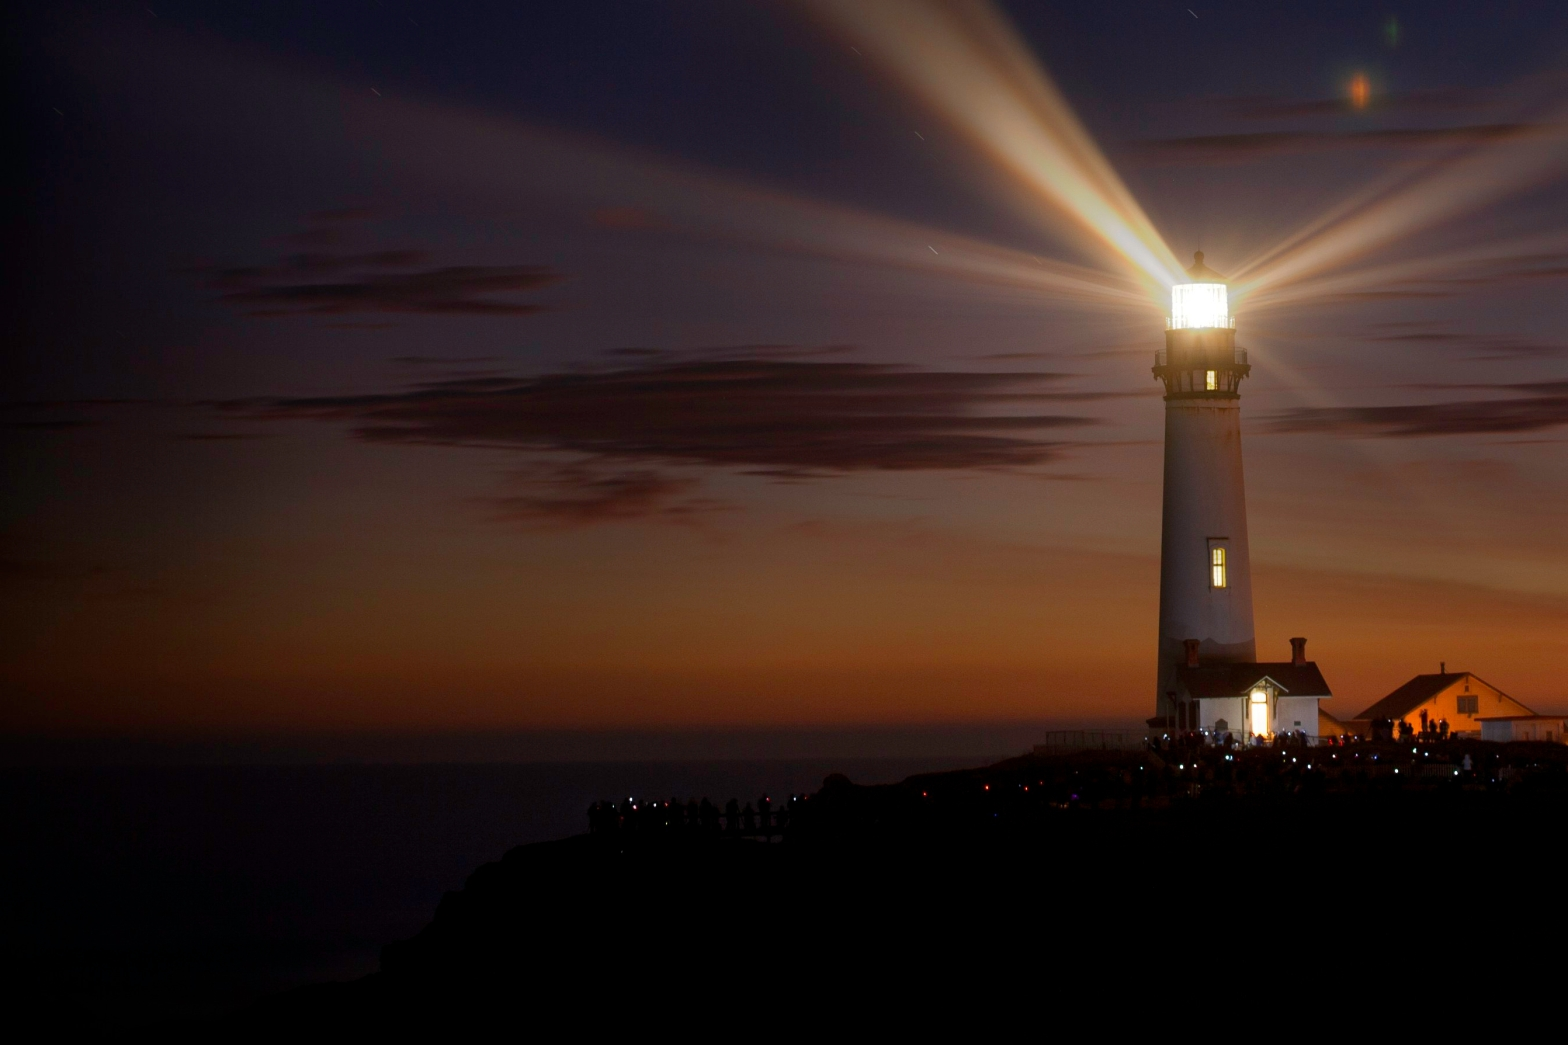 Photo of a lighthouse lit up at night. This photo represents the light of compassion shining through the night.